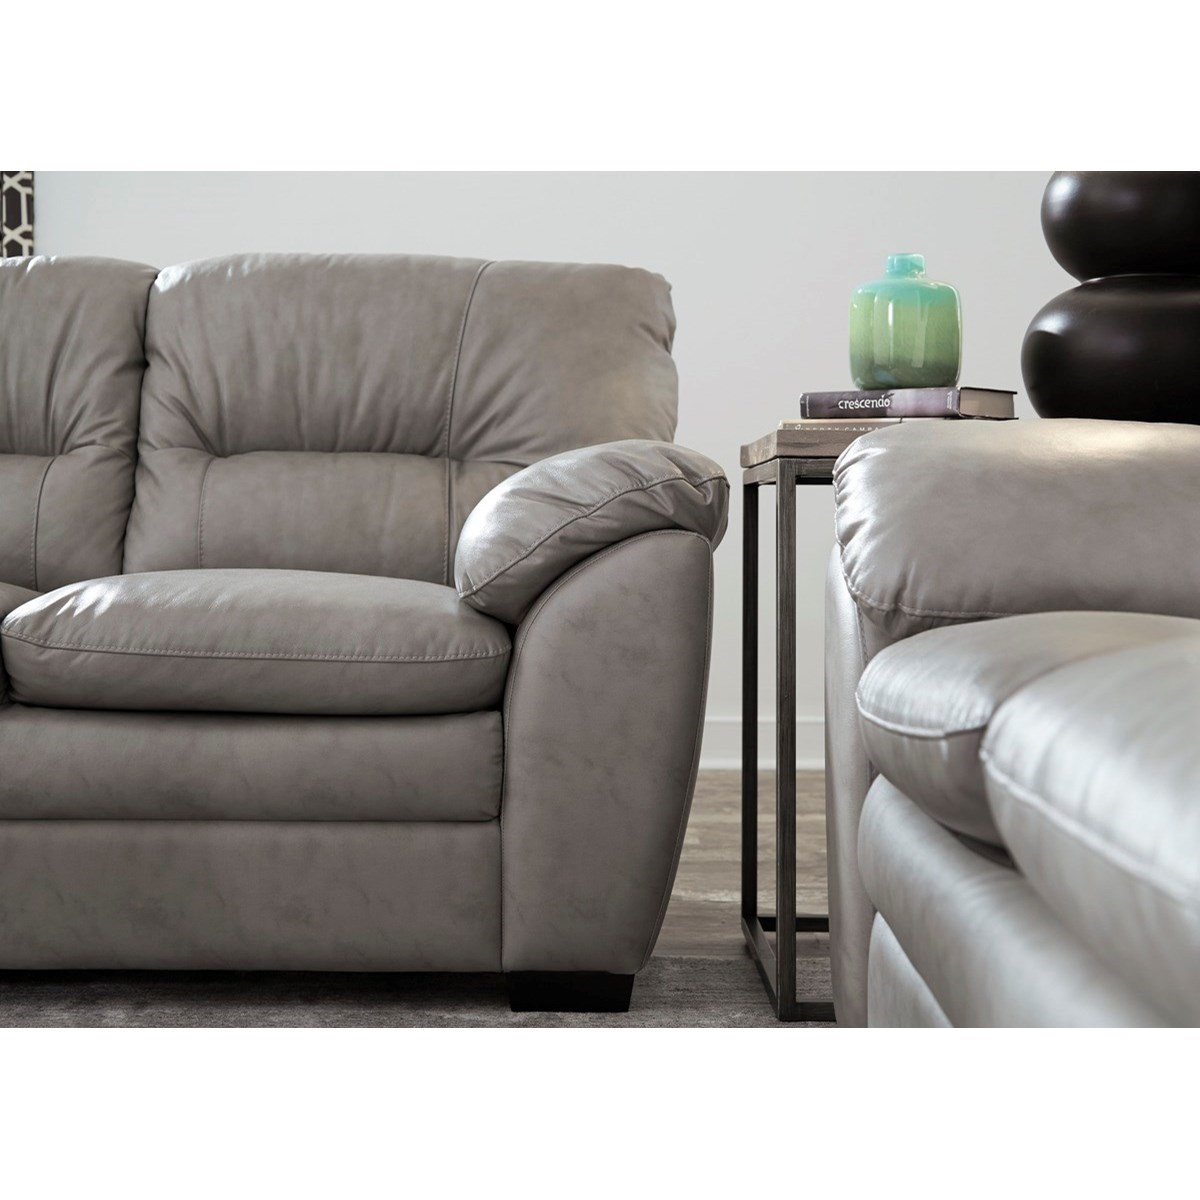 Palliser Amisk Casual Sofa With Pillow Arms Belfort Furniture Sofas